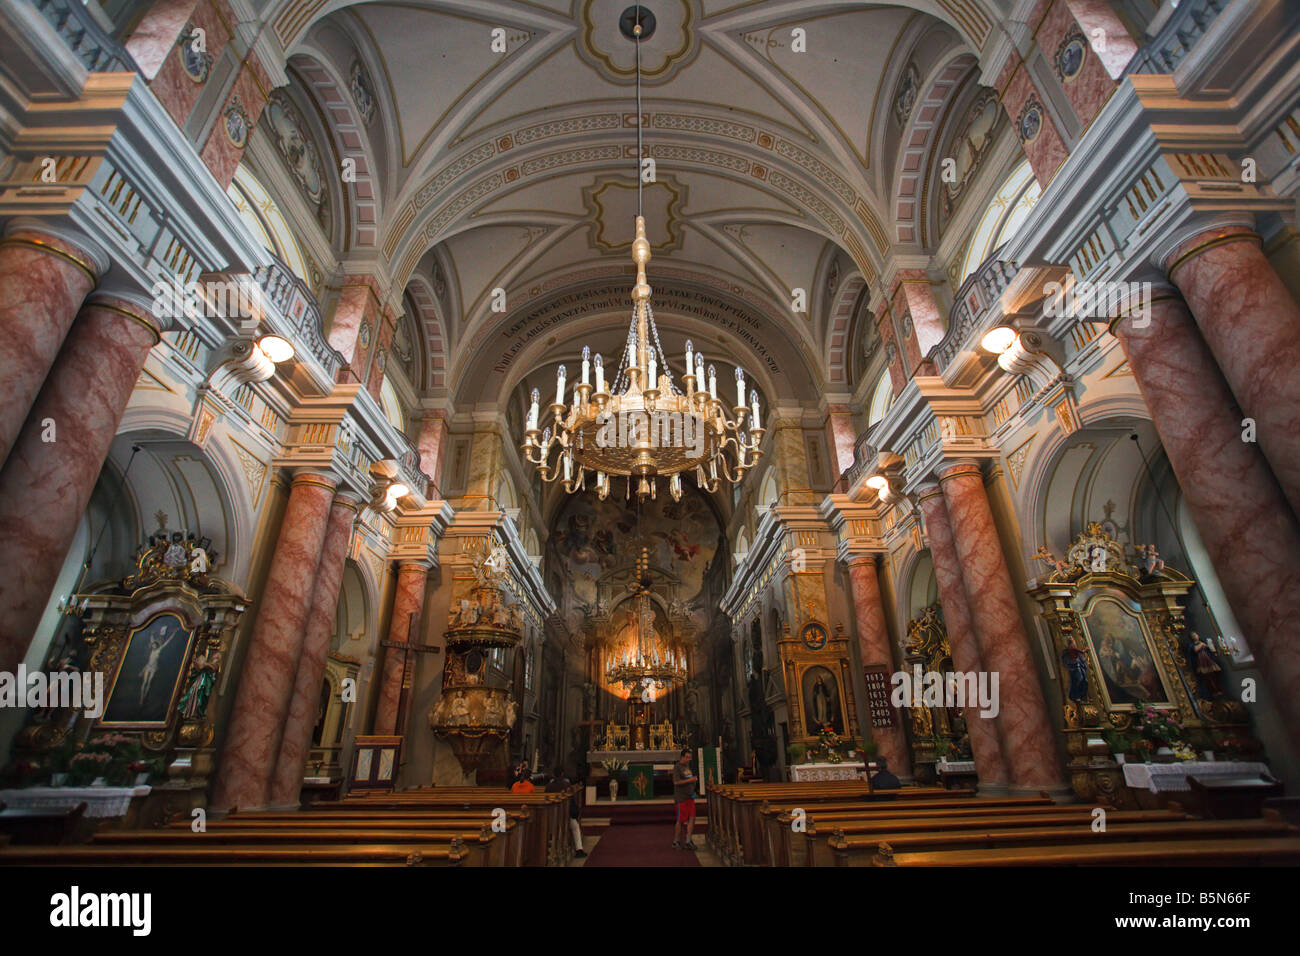 Interior of the catholic sibiu church, transylvania, romania - Stock Image